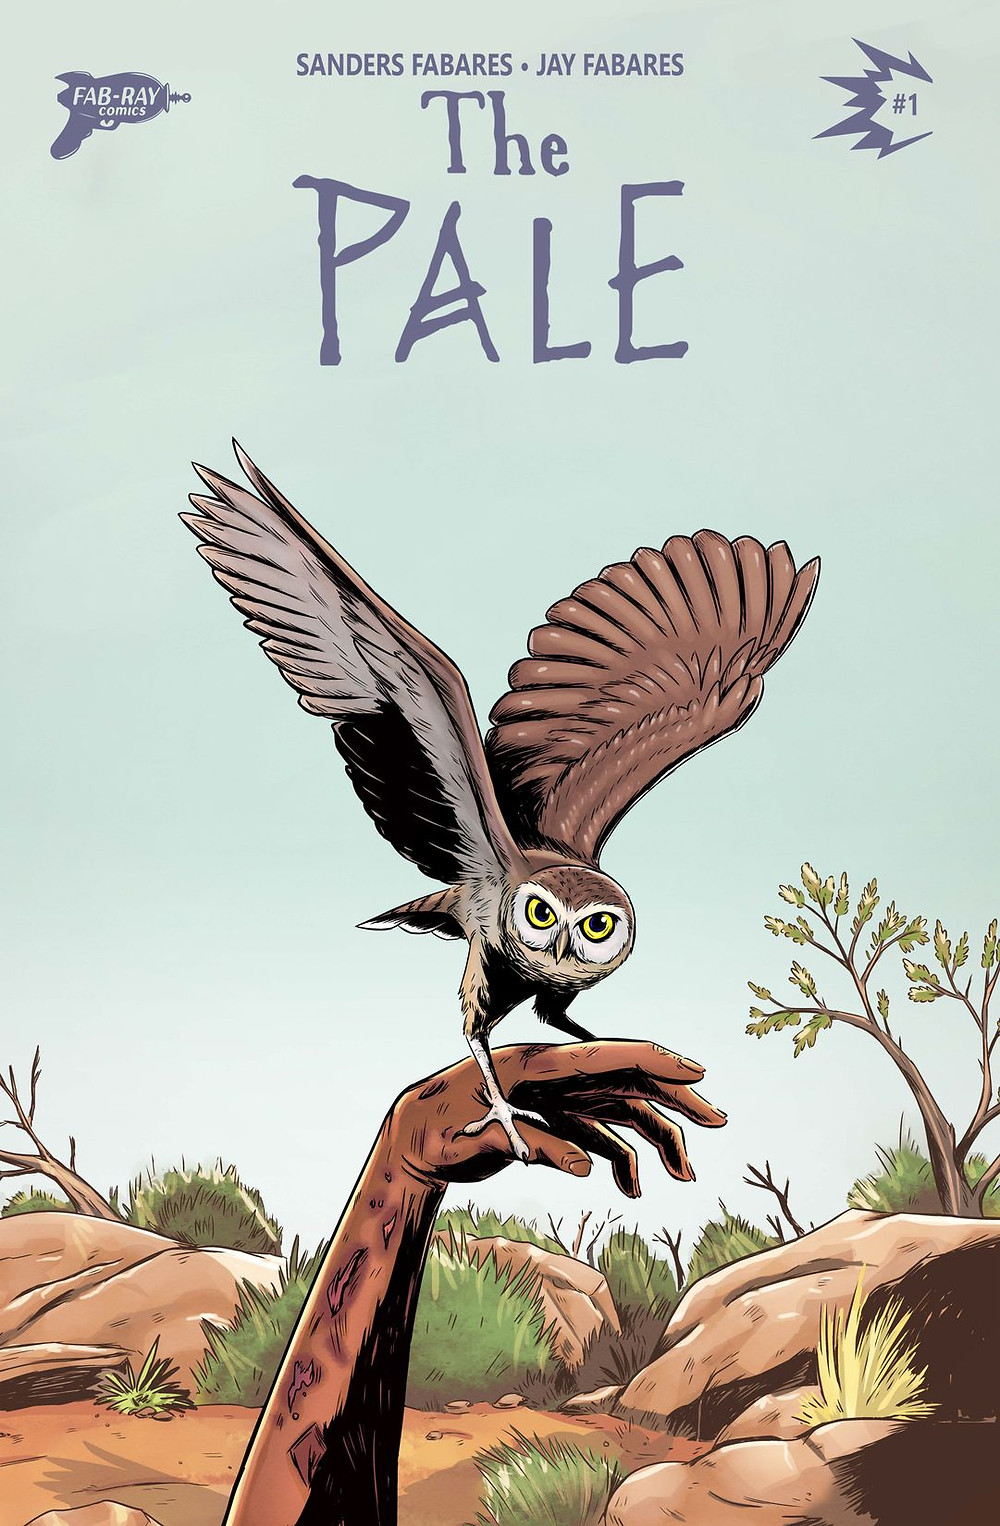 The Pale, issue #1, cover, Fab-Ray Comics, Fabares/Fabares